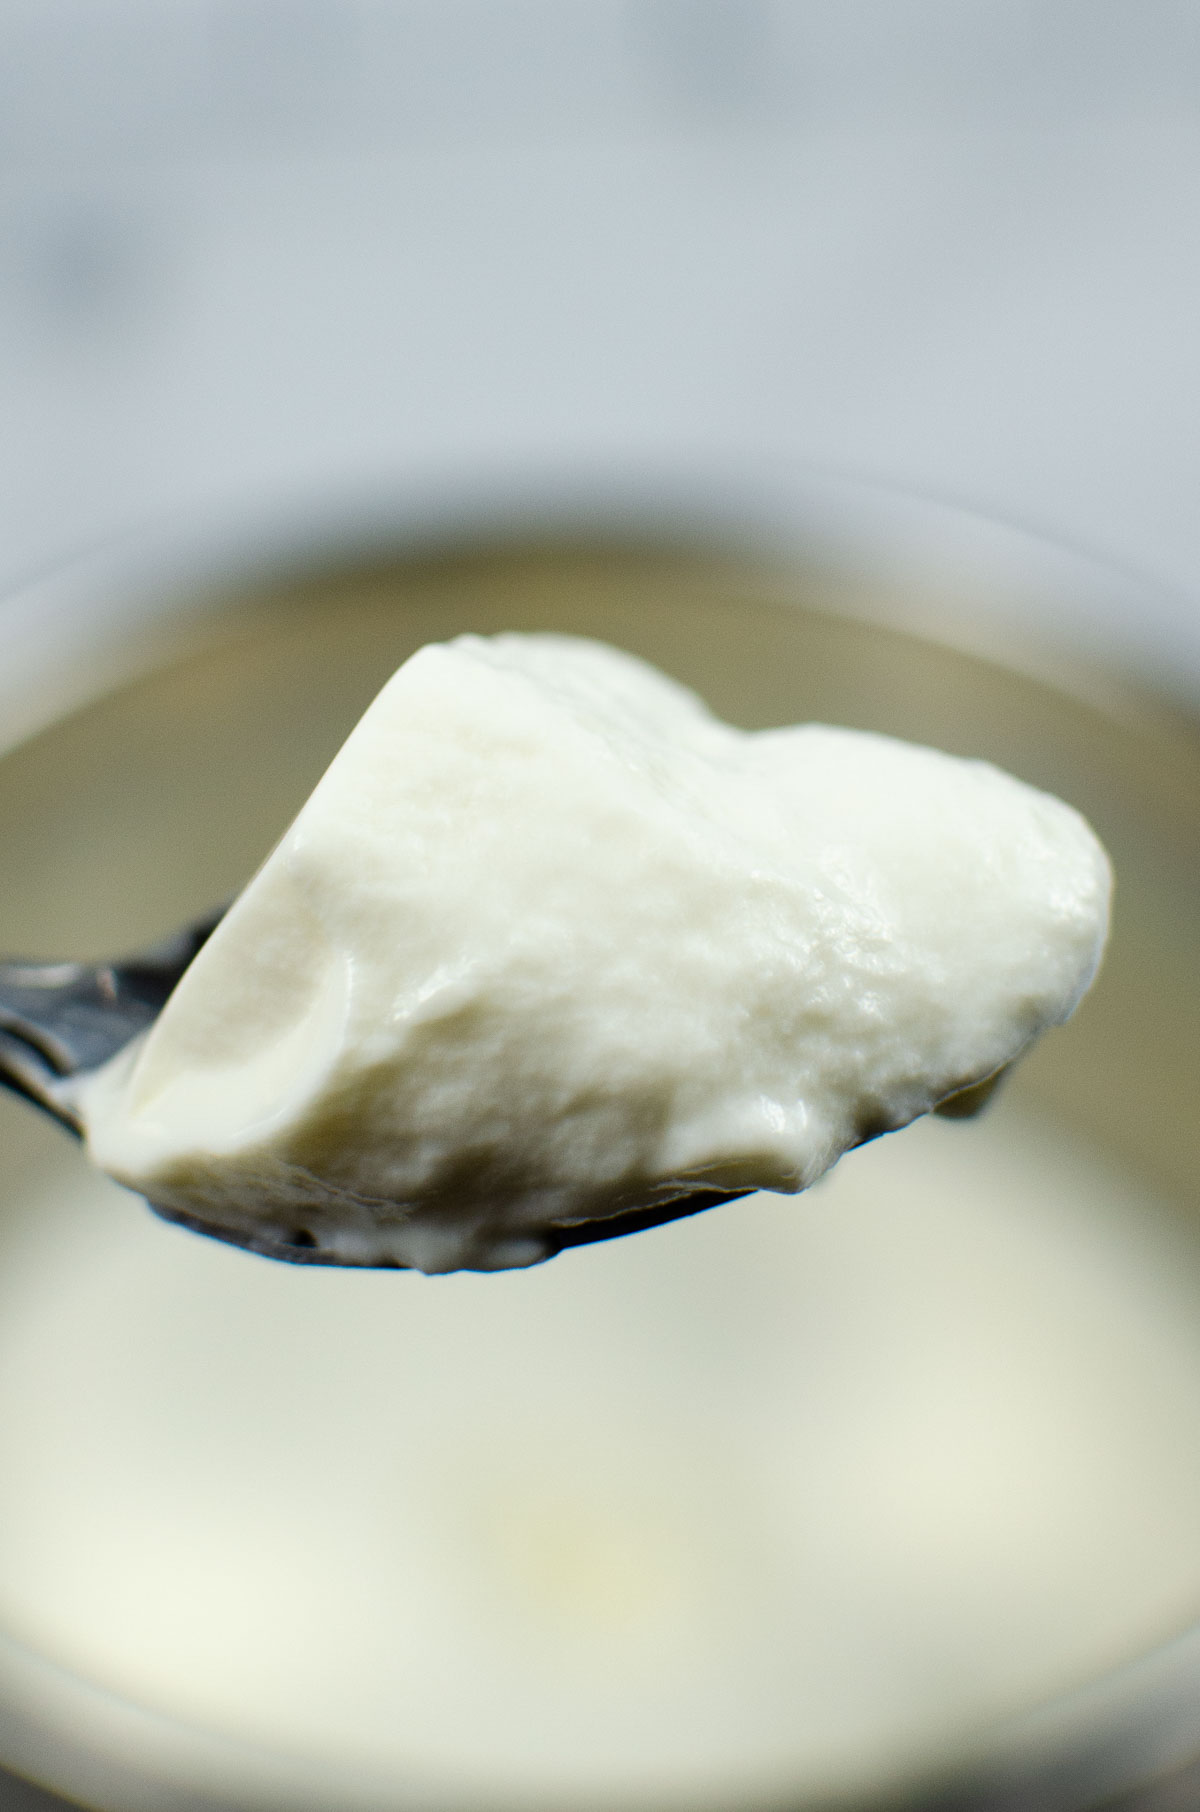 spoon full of a thick and creamy yogurt to check the consistency.